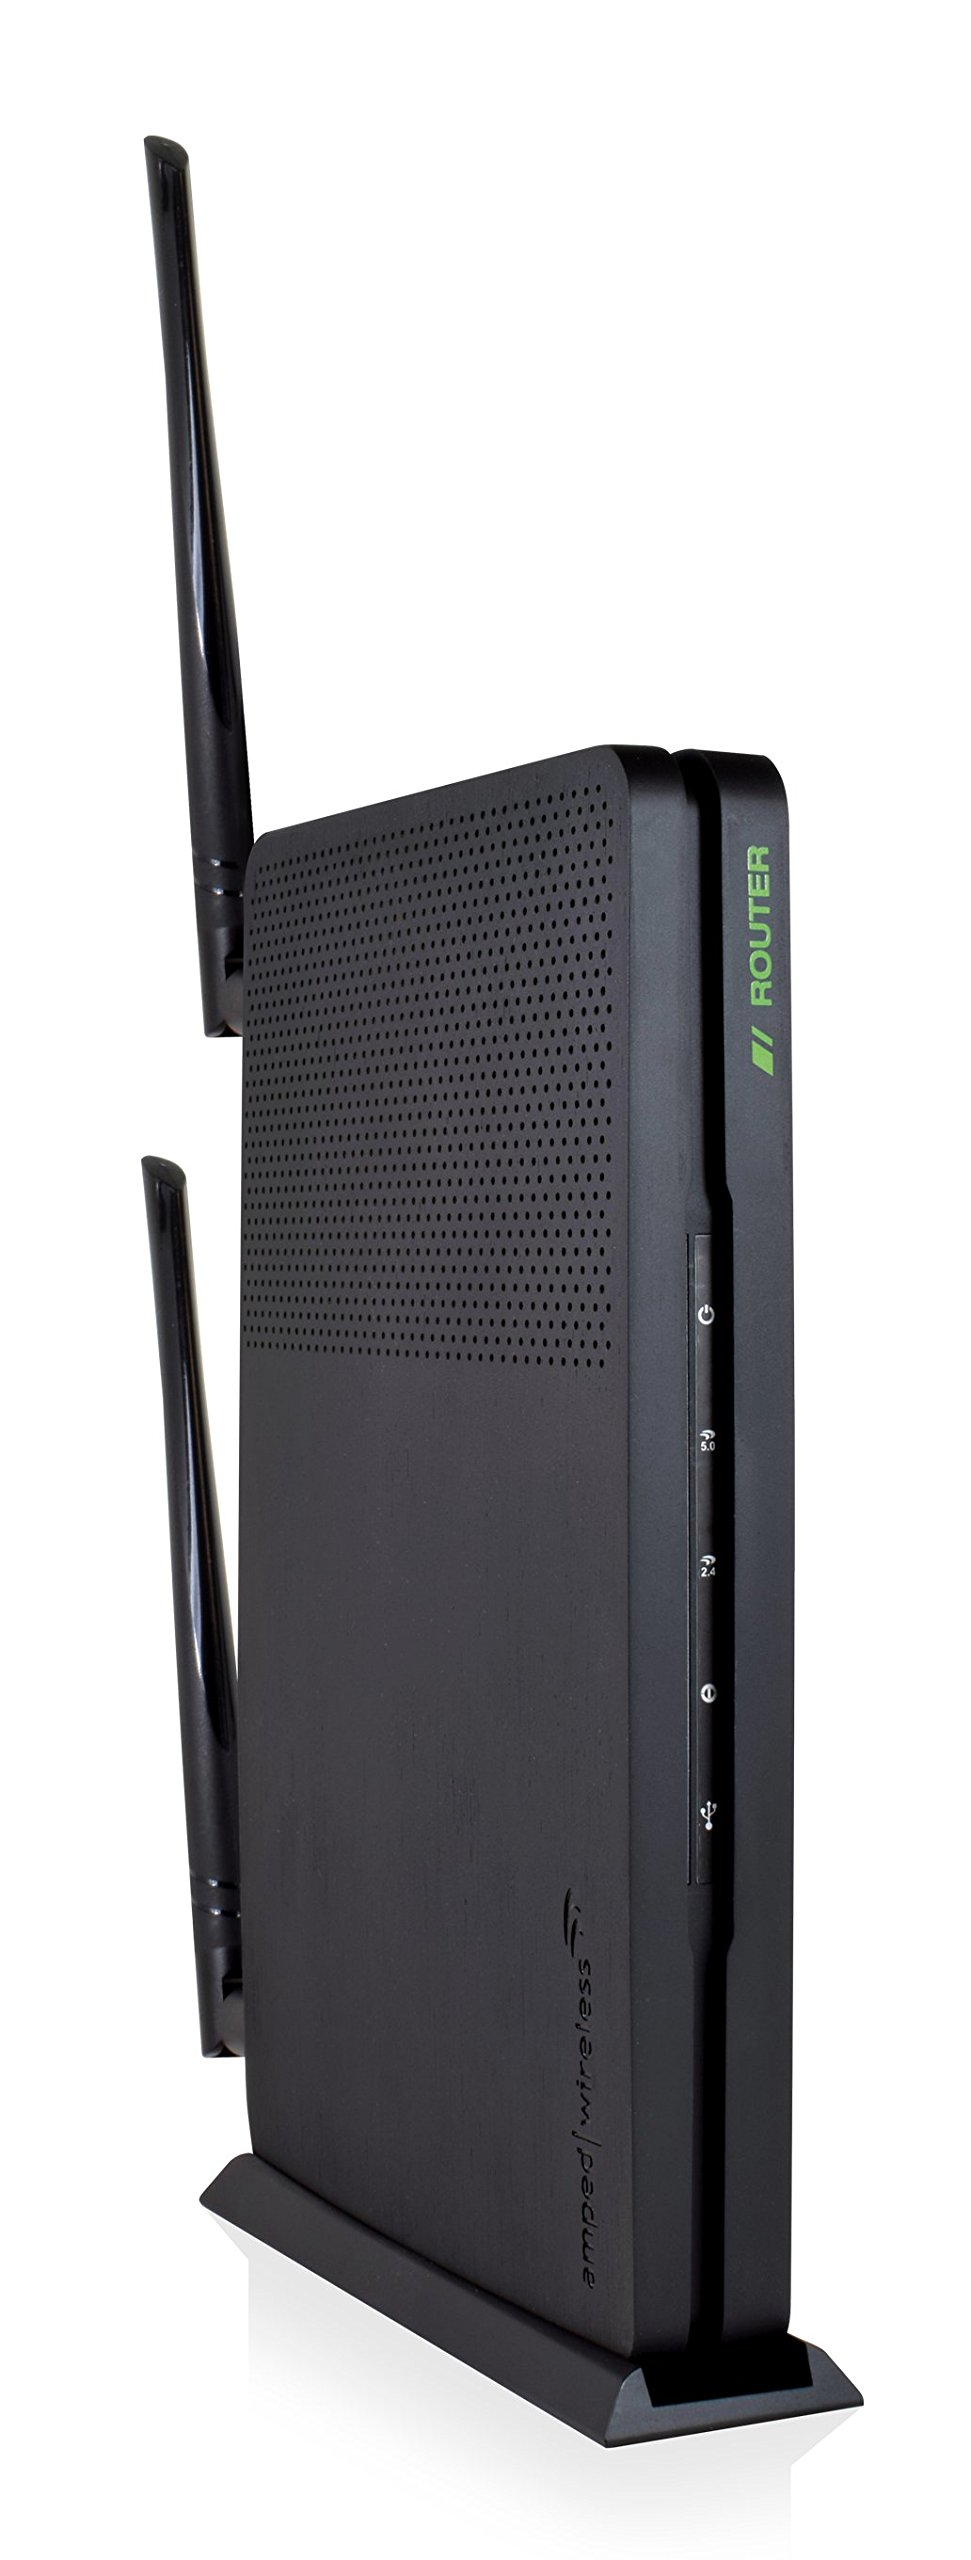 Amped Wireless ARTEMIS, High Power AC1300 Wi-Fi Router with MU-MIMO (RTA1300M) by Amped (Image #4)